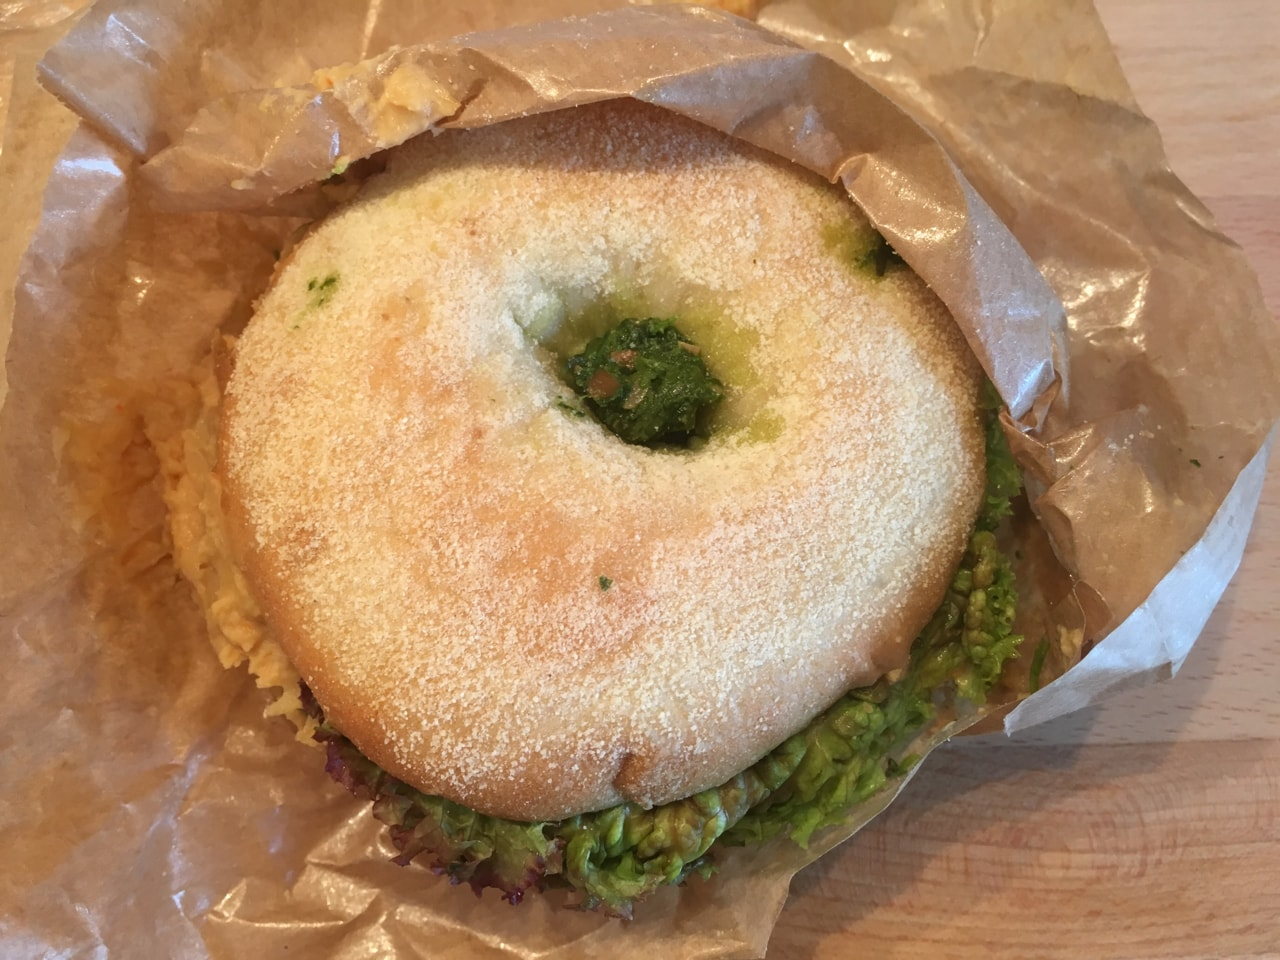 Vegan bagel (hummus, pesto) from Fotografiska (23/10)